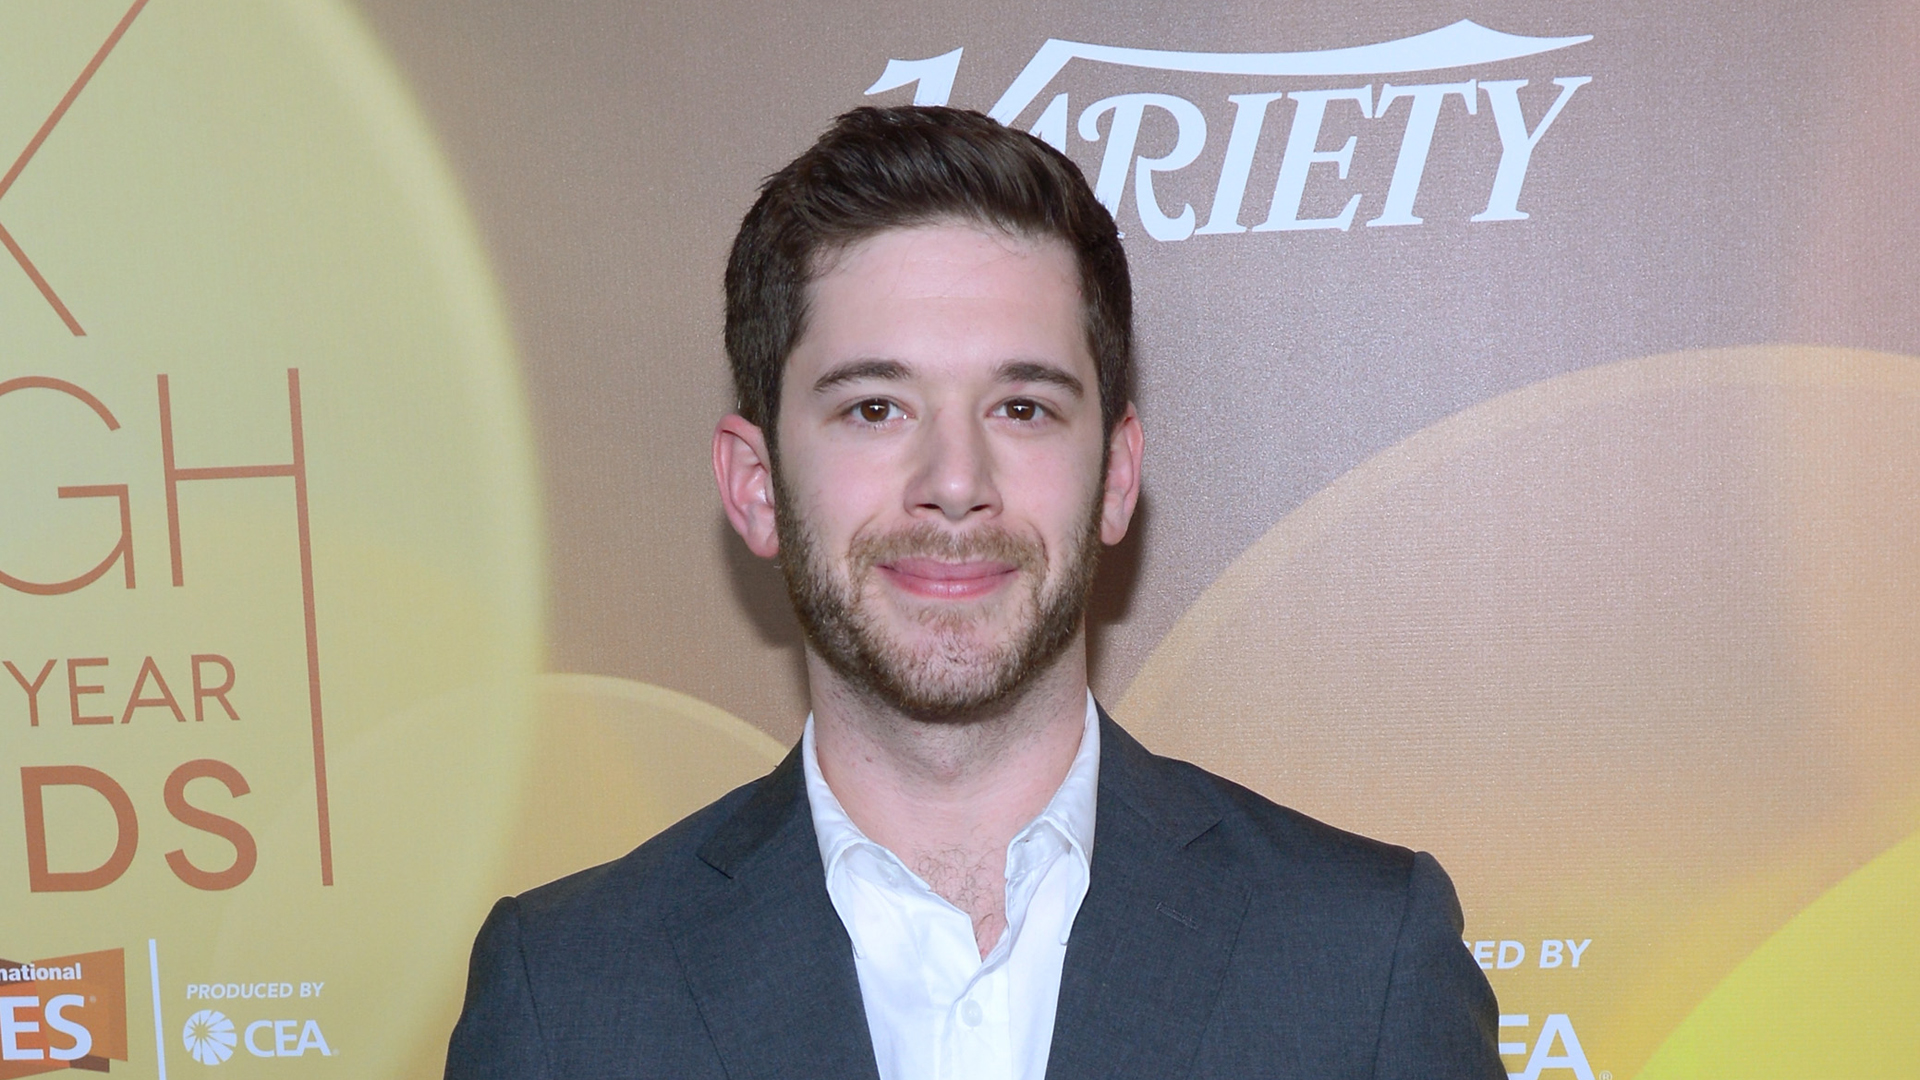 Colin Kroll attends the Variety Breakthrough of the Year Awards in Las Vegas on Jan. 9, 2014. (Credit: Bryan Steffy/Getty Images for Variety)